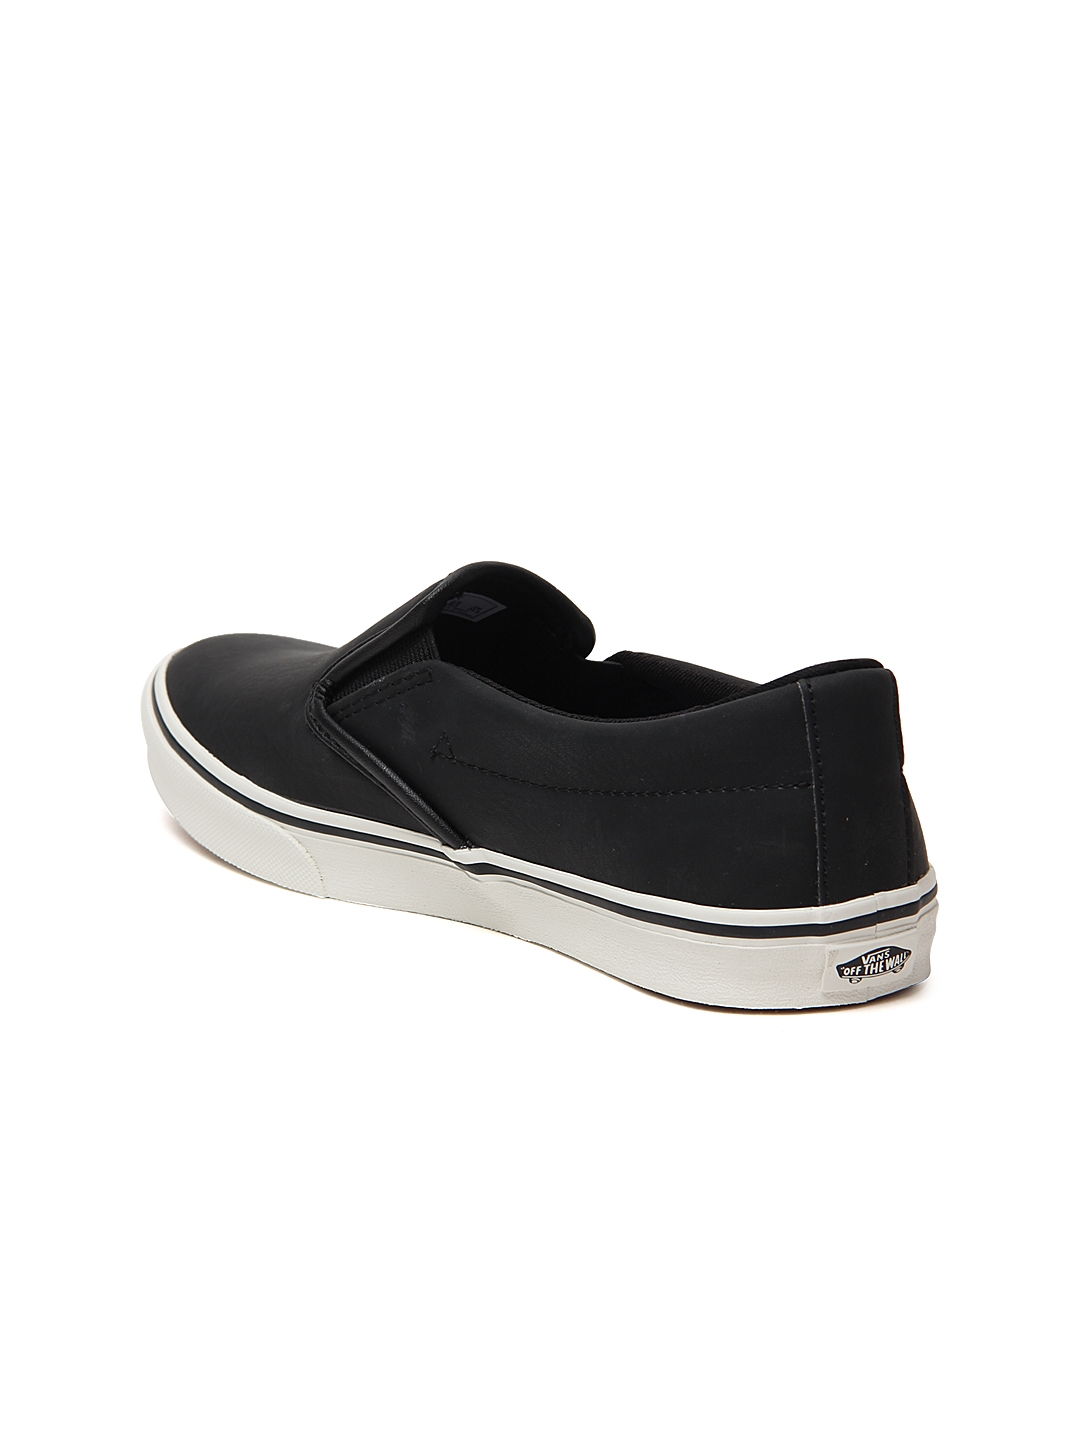 Buy Vans Women Black Slip On Asher Low Sneakers - Casual Shoes for ... 096d4cbf0